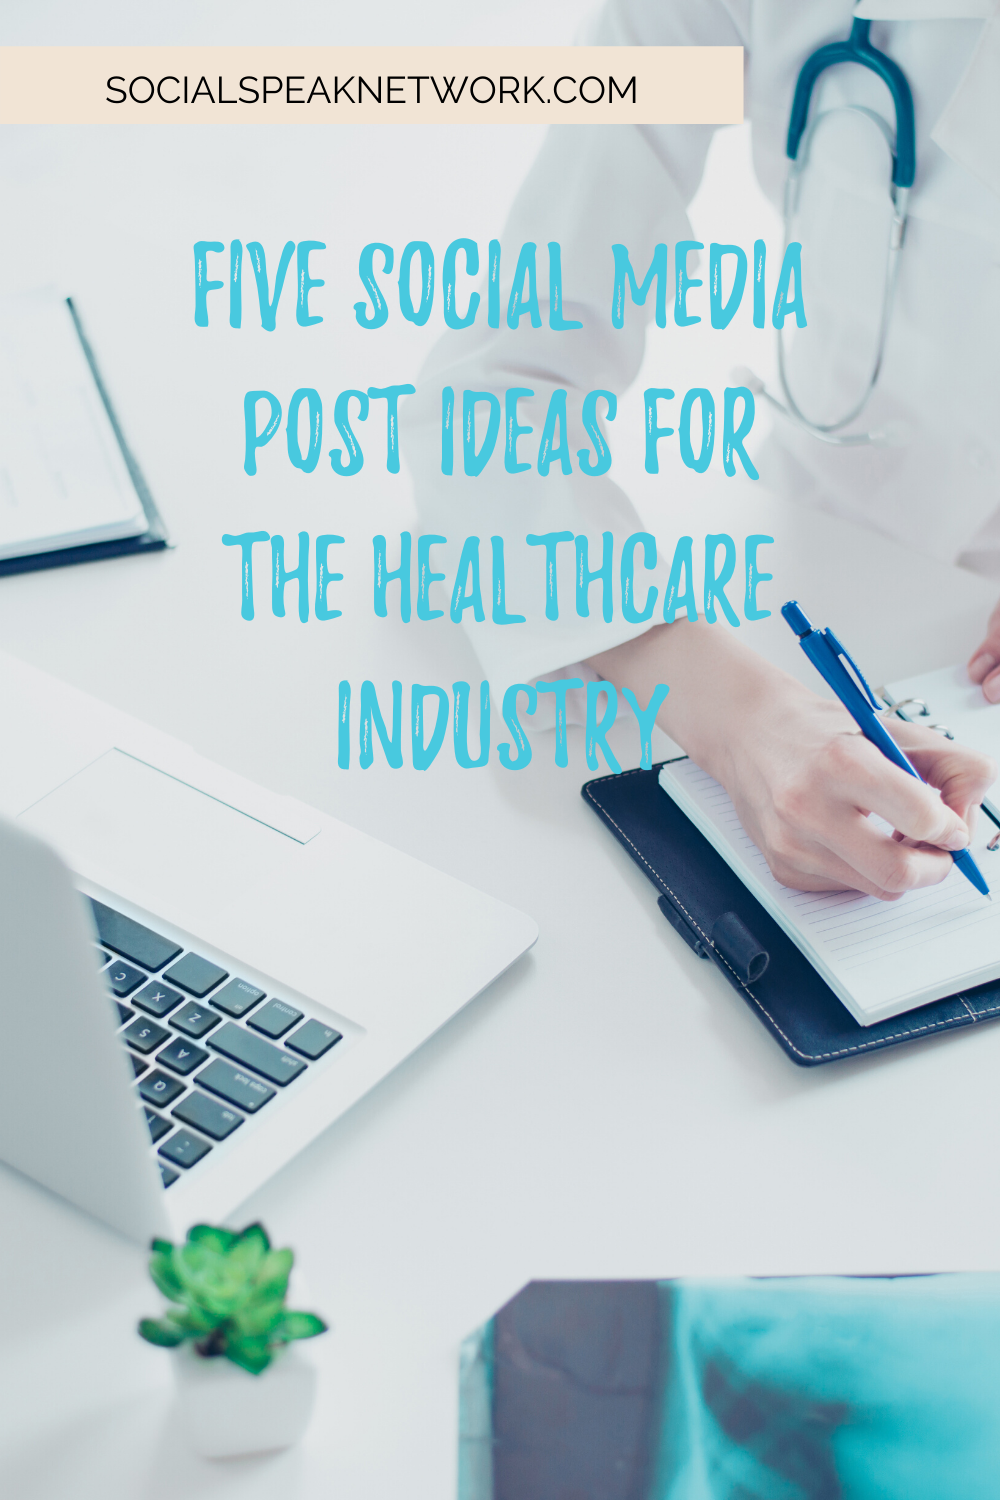 Five Social Media Post Ideas for the Healthcare Industry